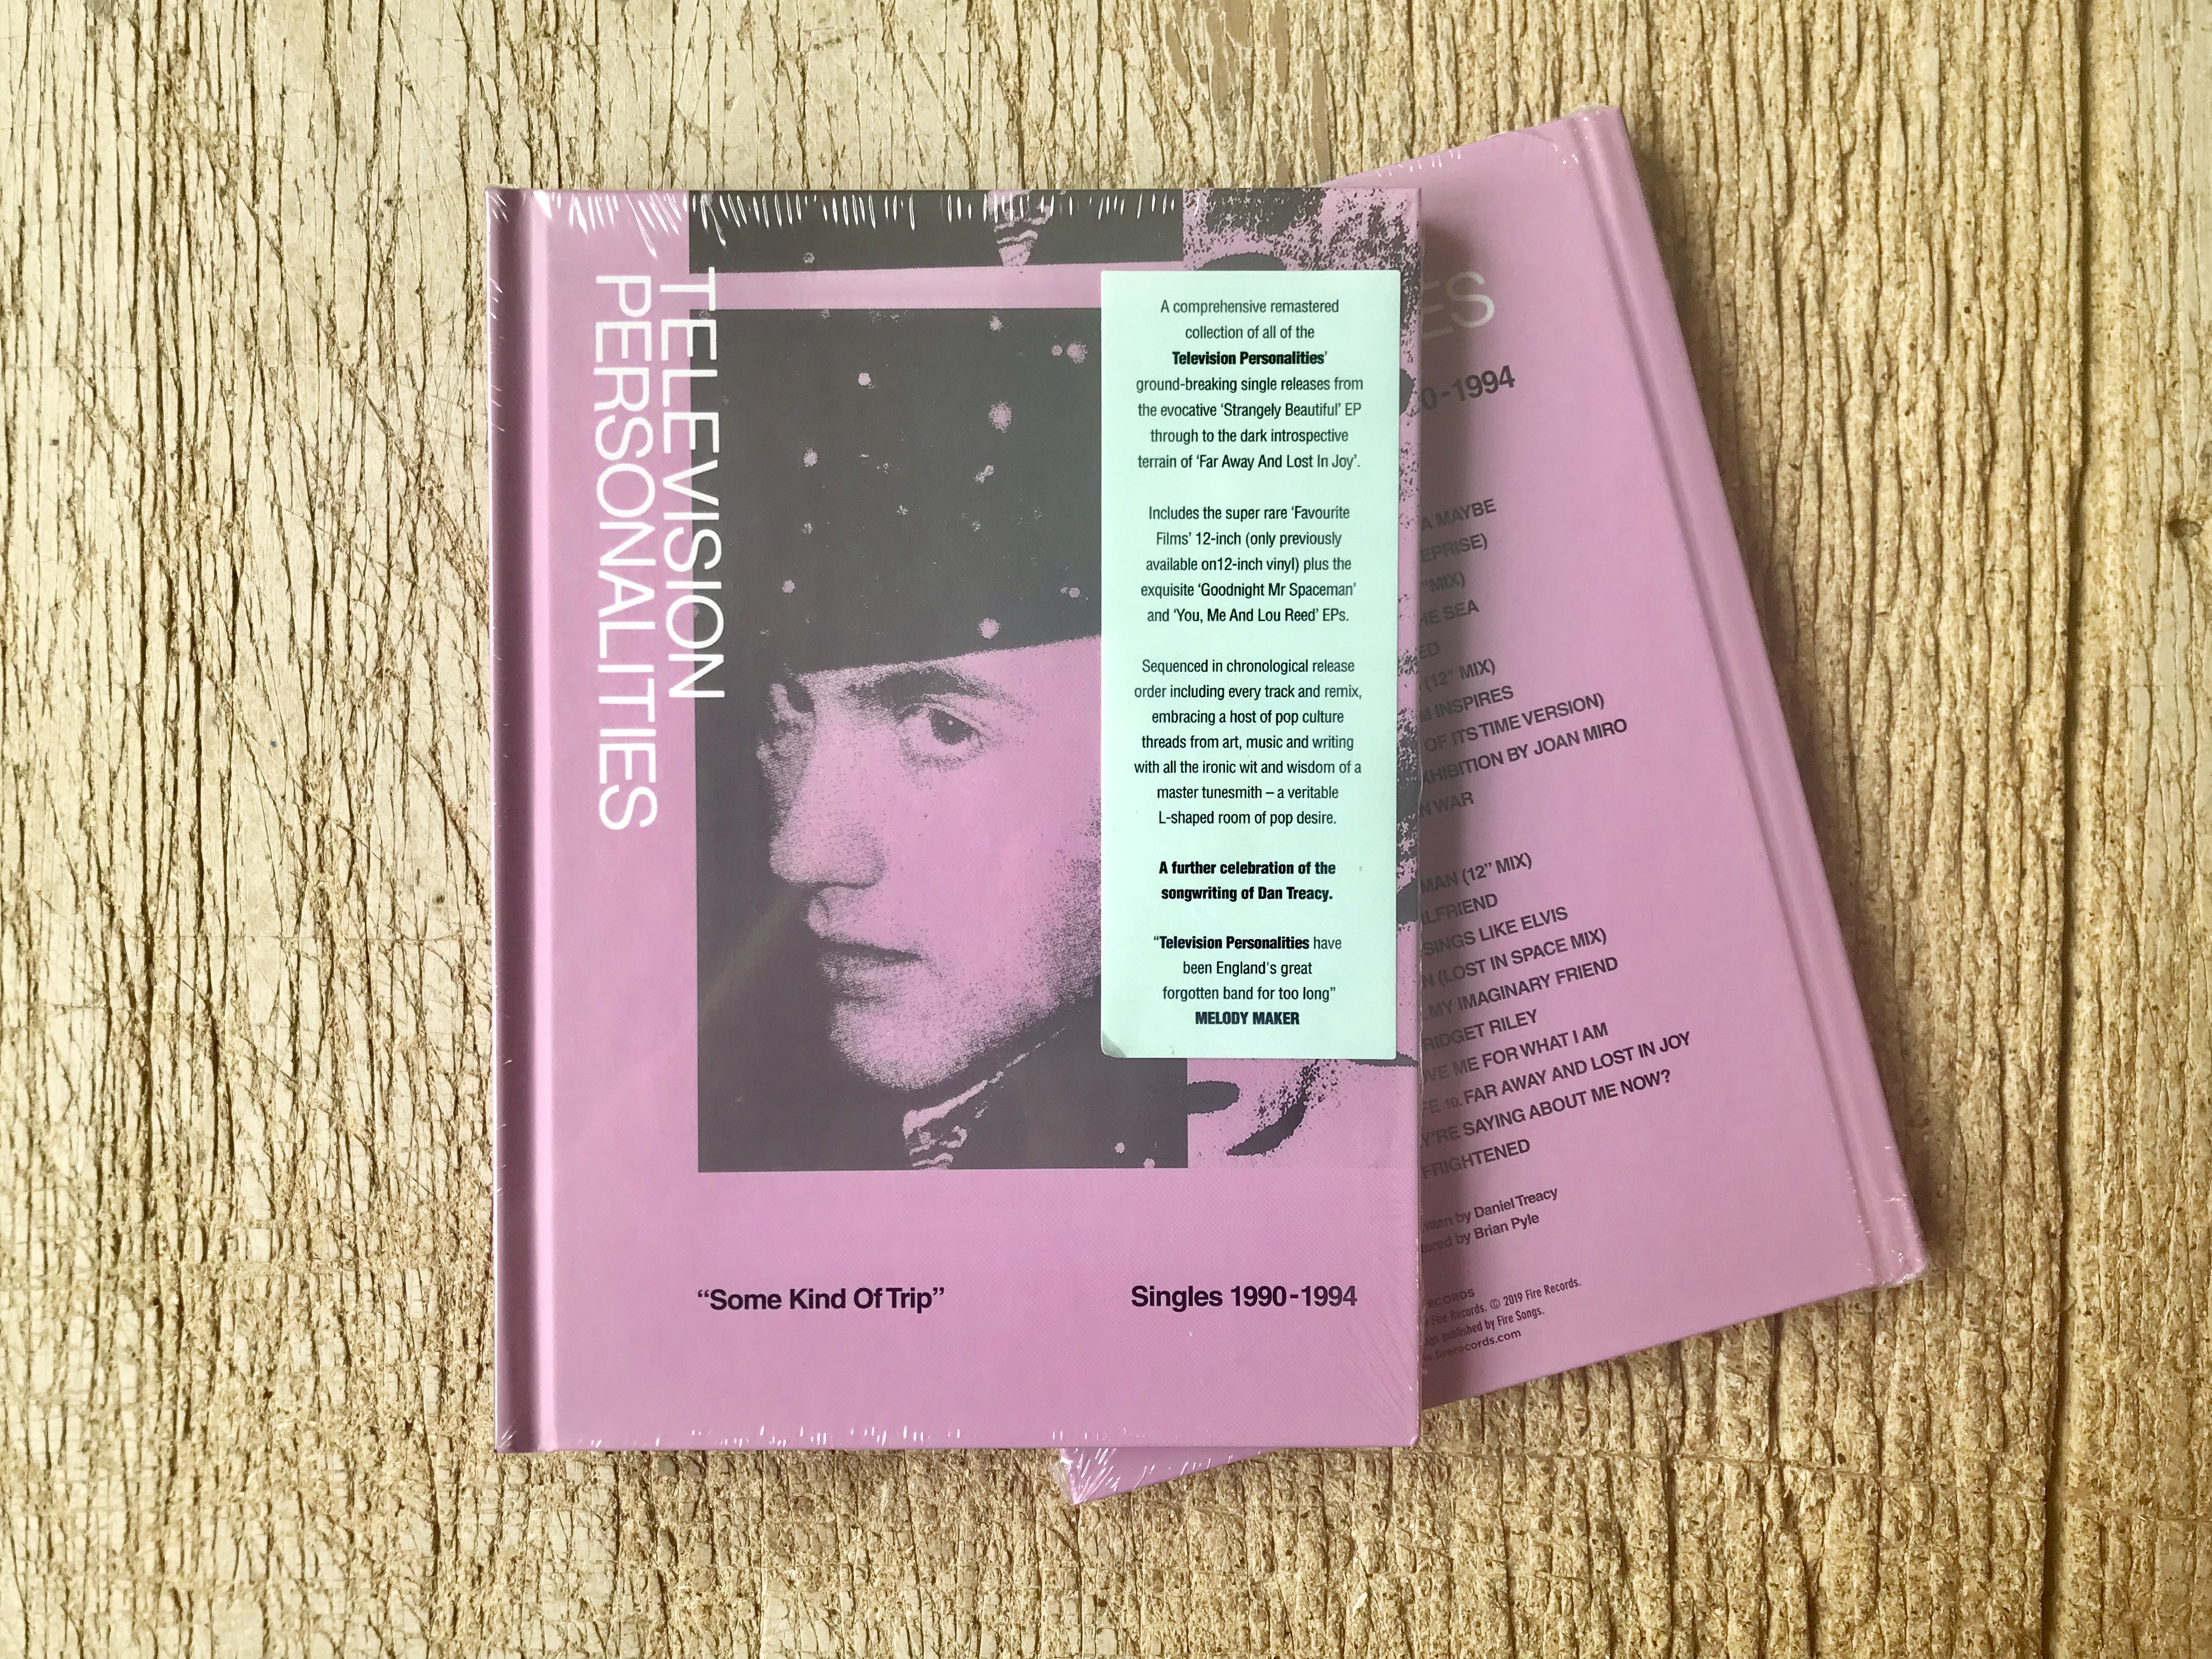 Television Personalities - Some Kind Of Trip: Singles 1990 - 1994 (RSD 2019)